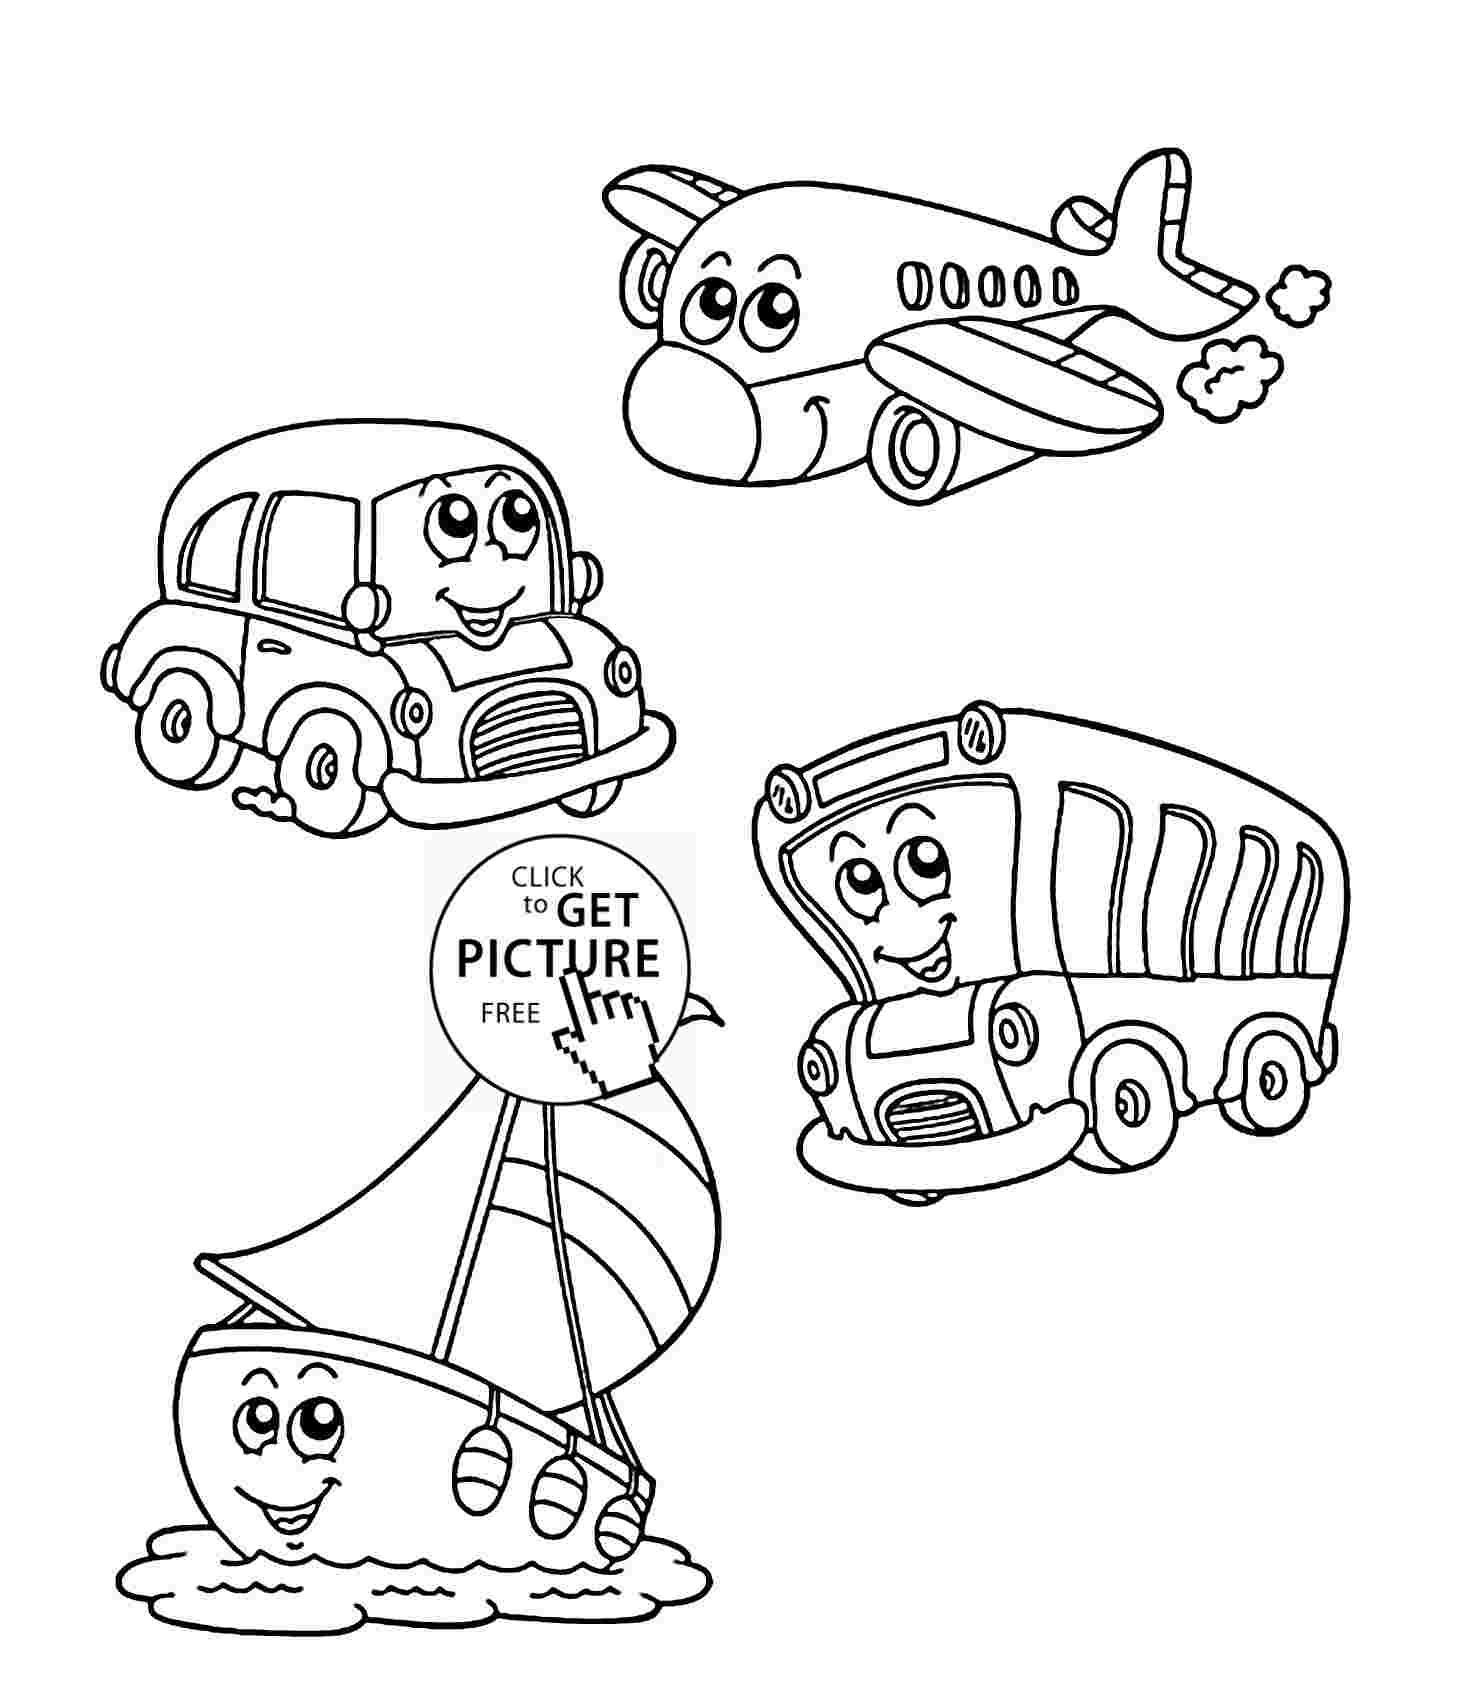 Transportation Coloring Book Pages Coloring Book Pages Coloring Pages Coloring Books